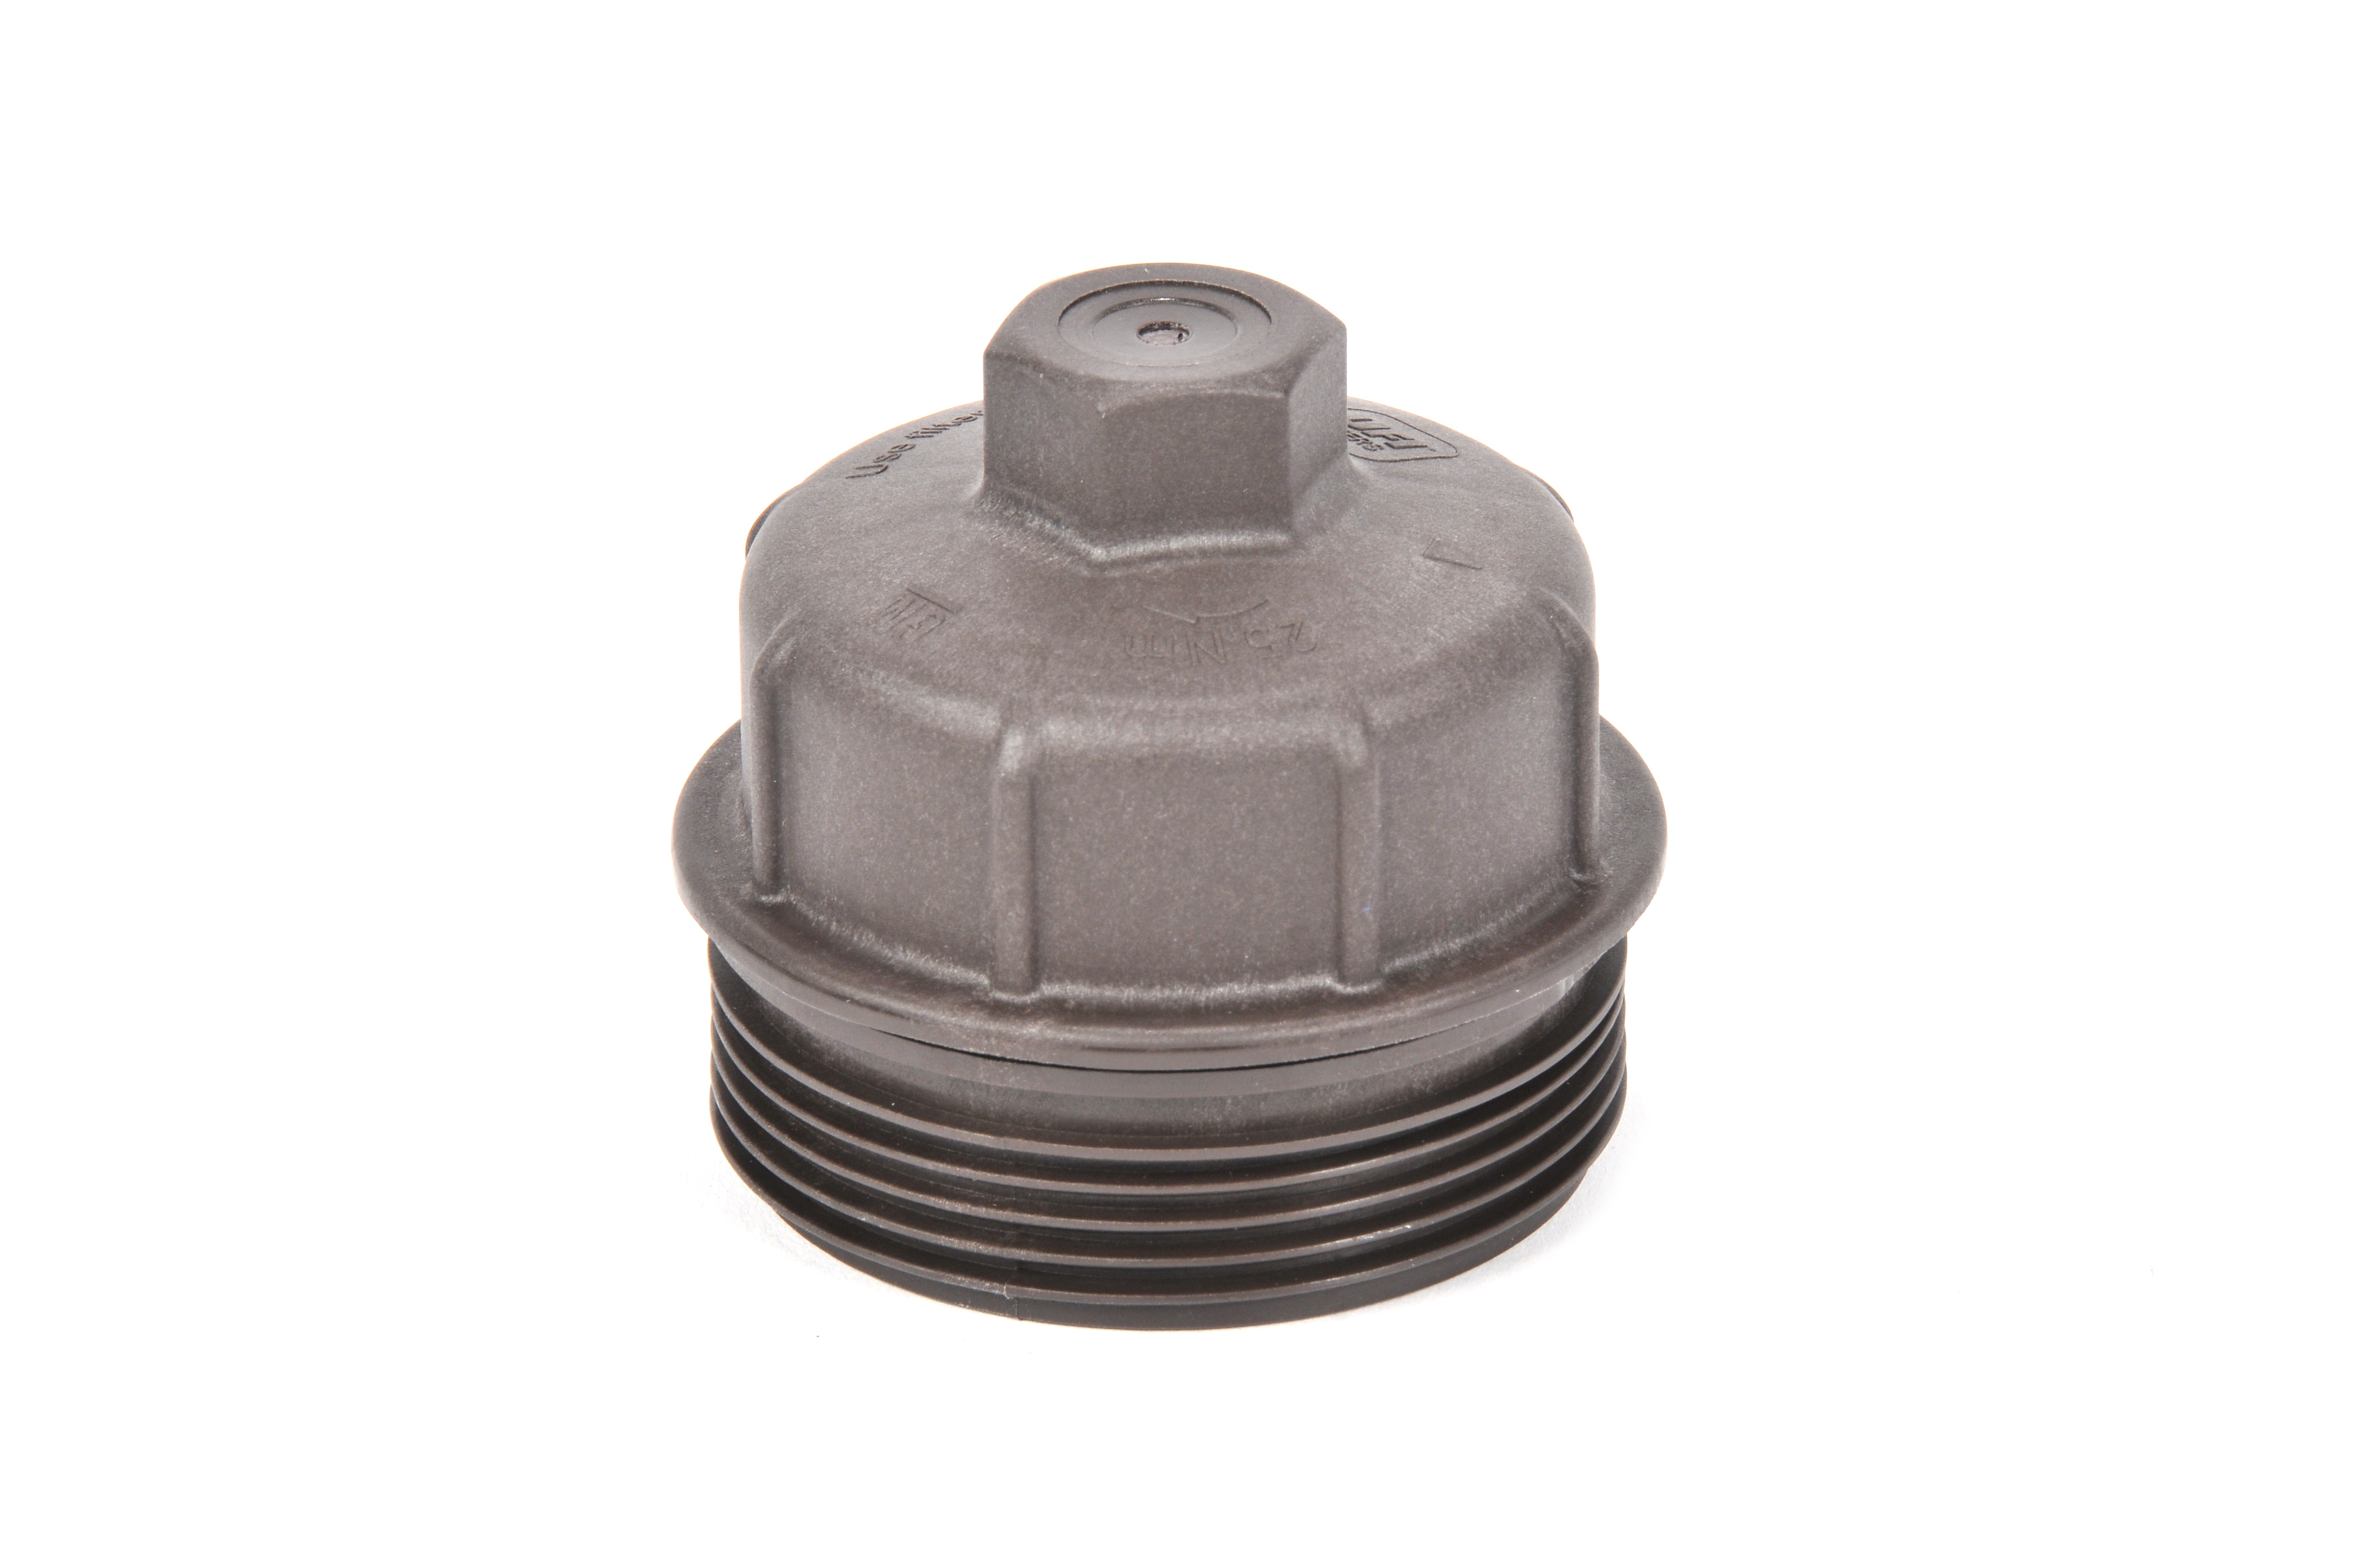 ACDELCO PROFESSIONAL - Engine Oil Filter Cap - DCC 25195776